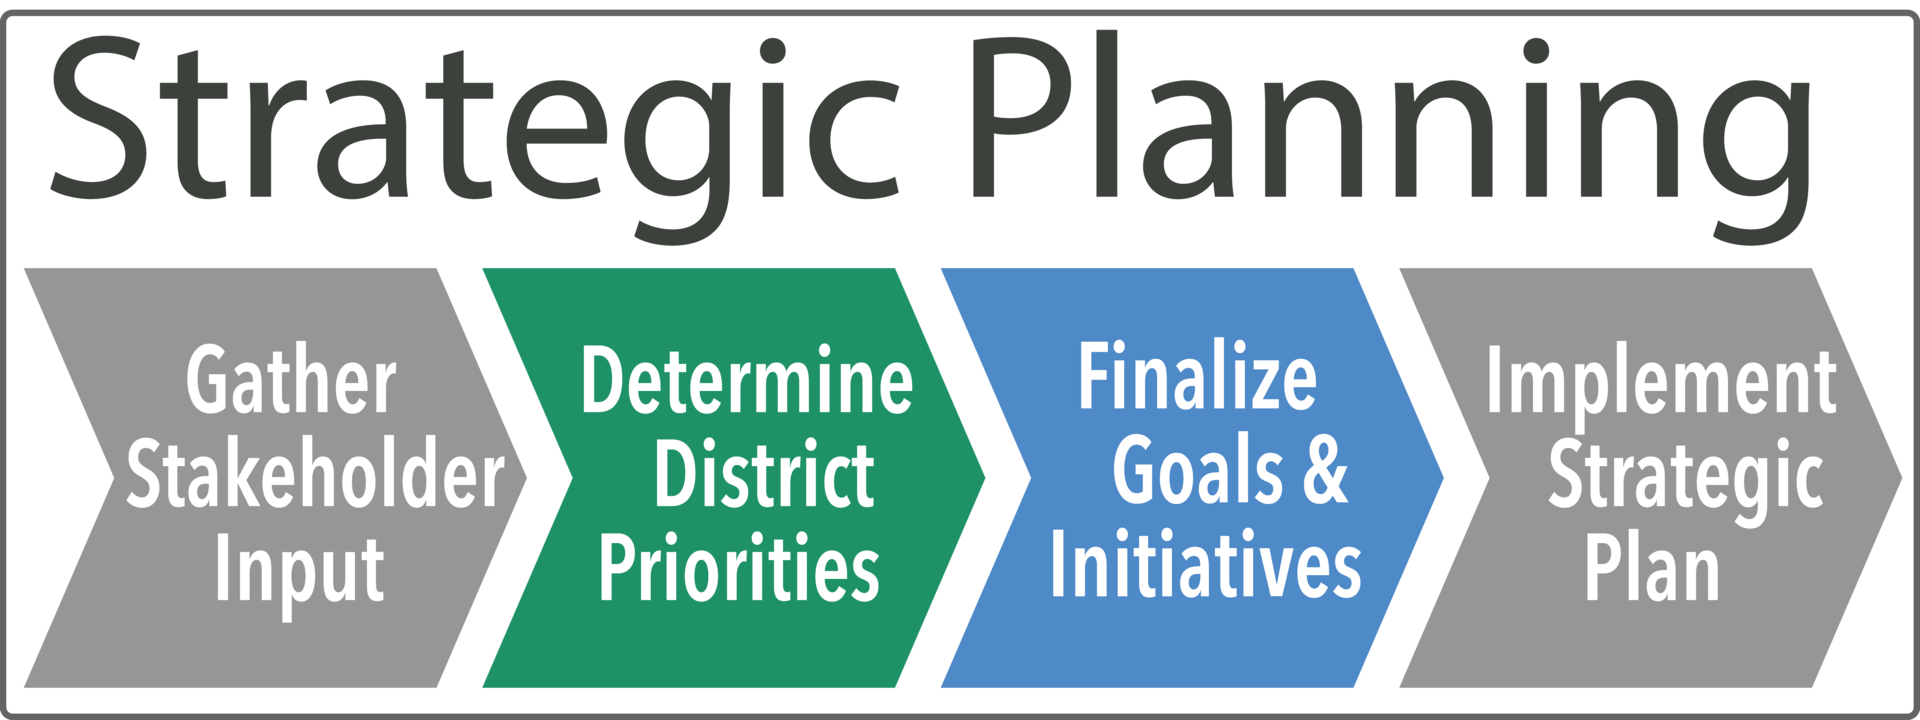 Strategic Planning Flowchart